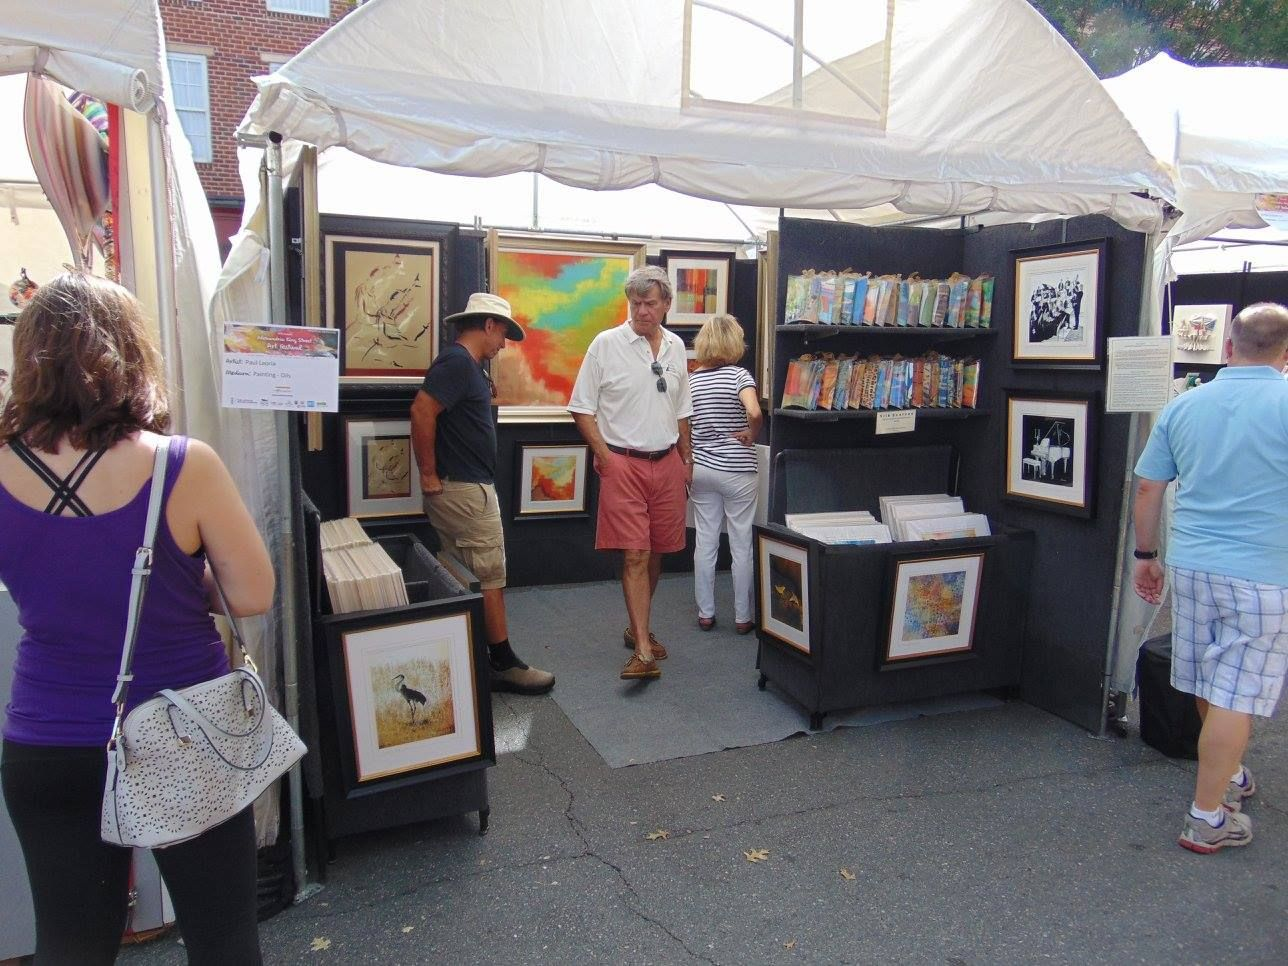 Paul Laoria Art Show Booths Booth Display